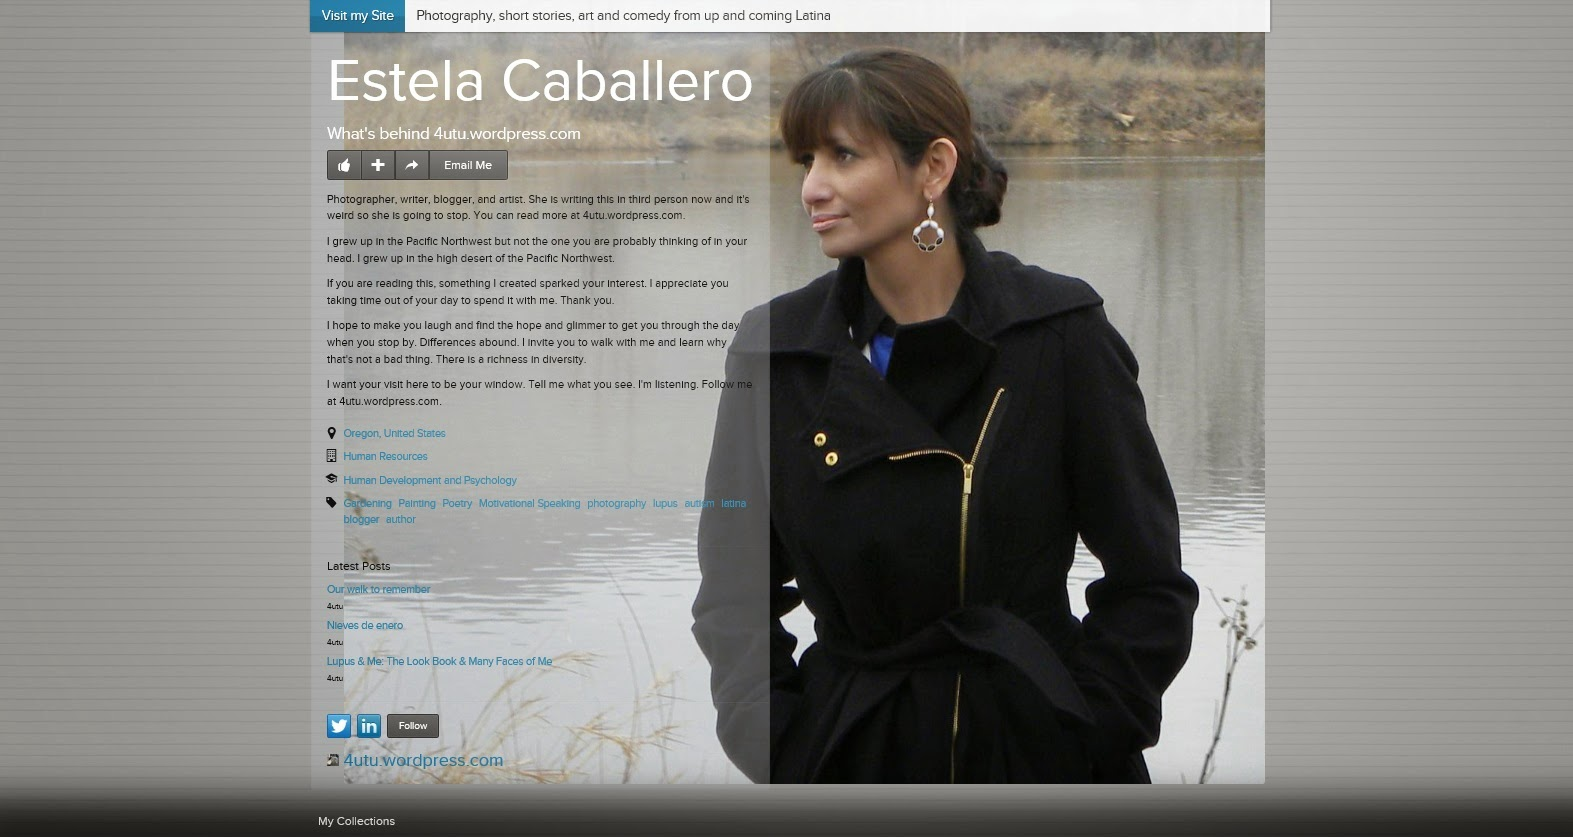 An image of Estela Caballero's, (Photographer, Blogger, Writer and Artist) about.me page